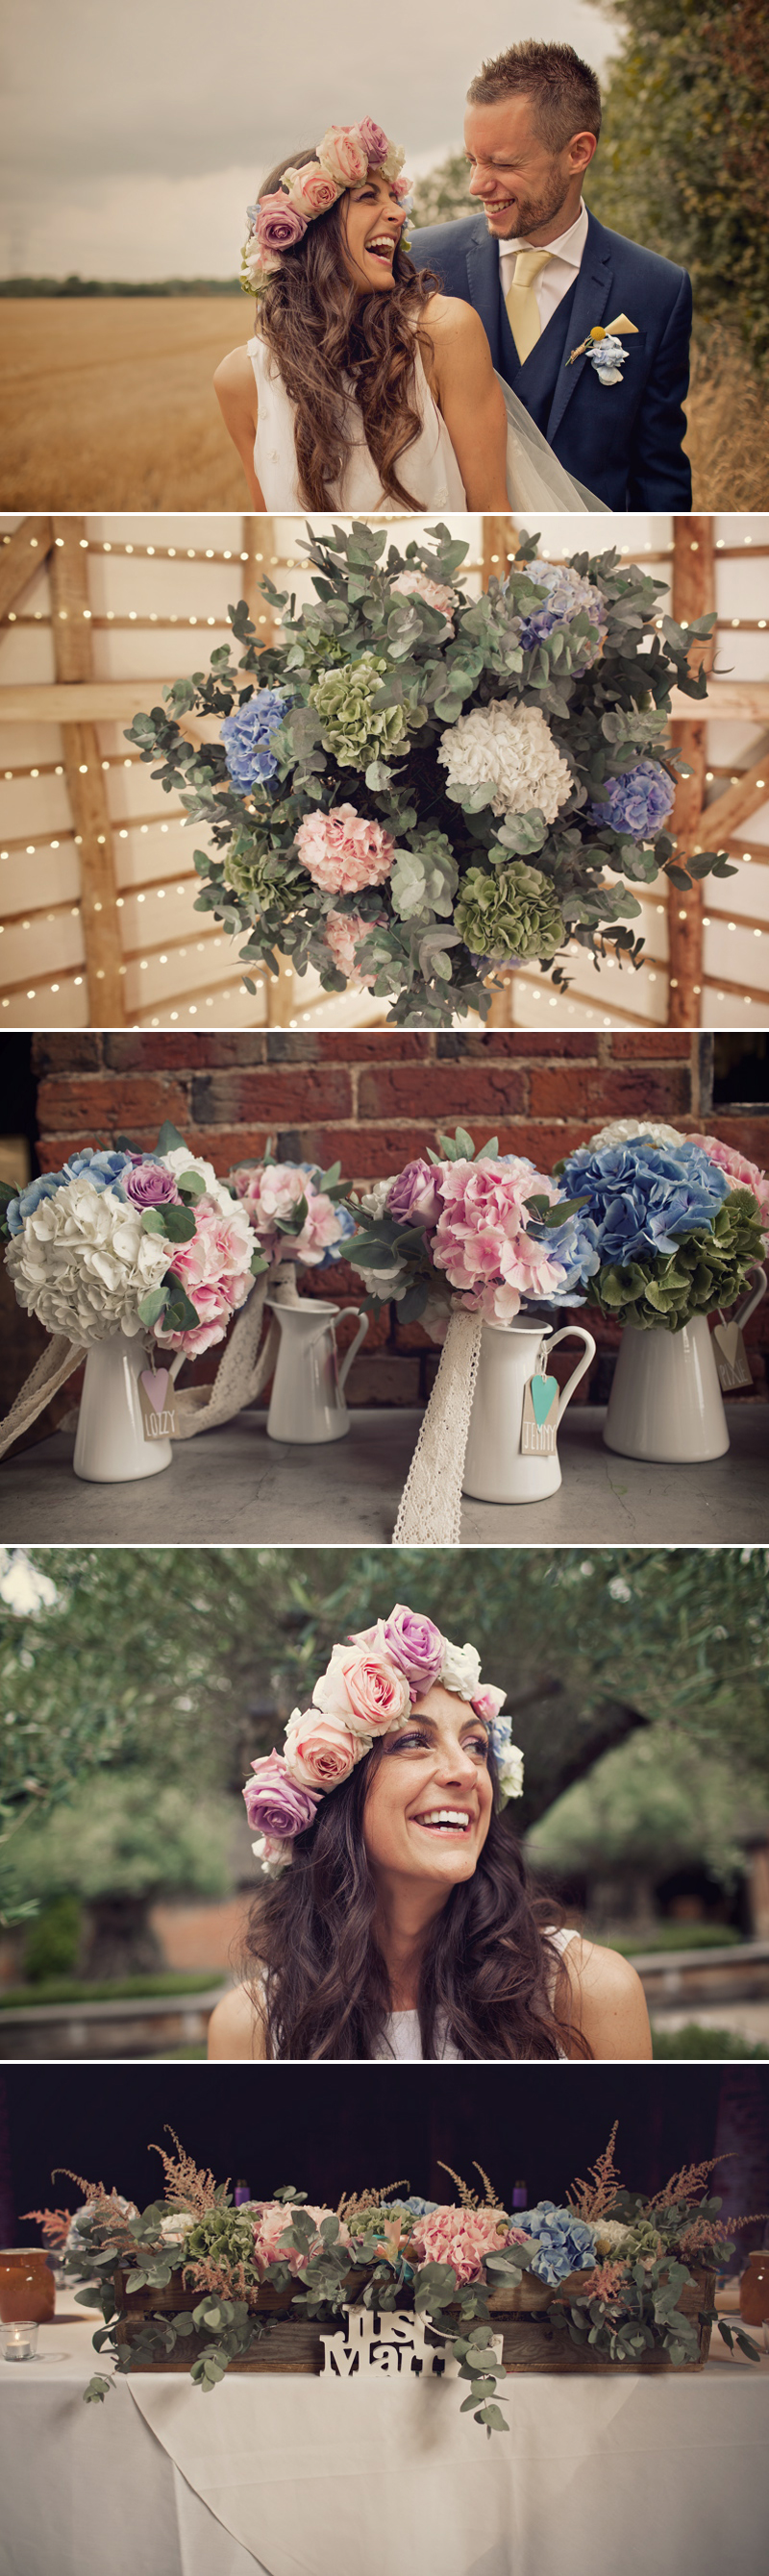 wedding-florists-passion-for-flowers-coco-wedding-venues-008